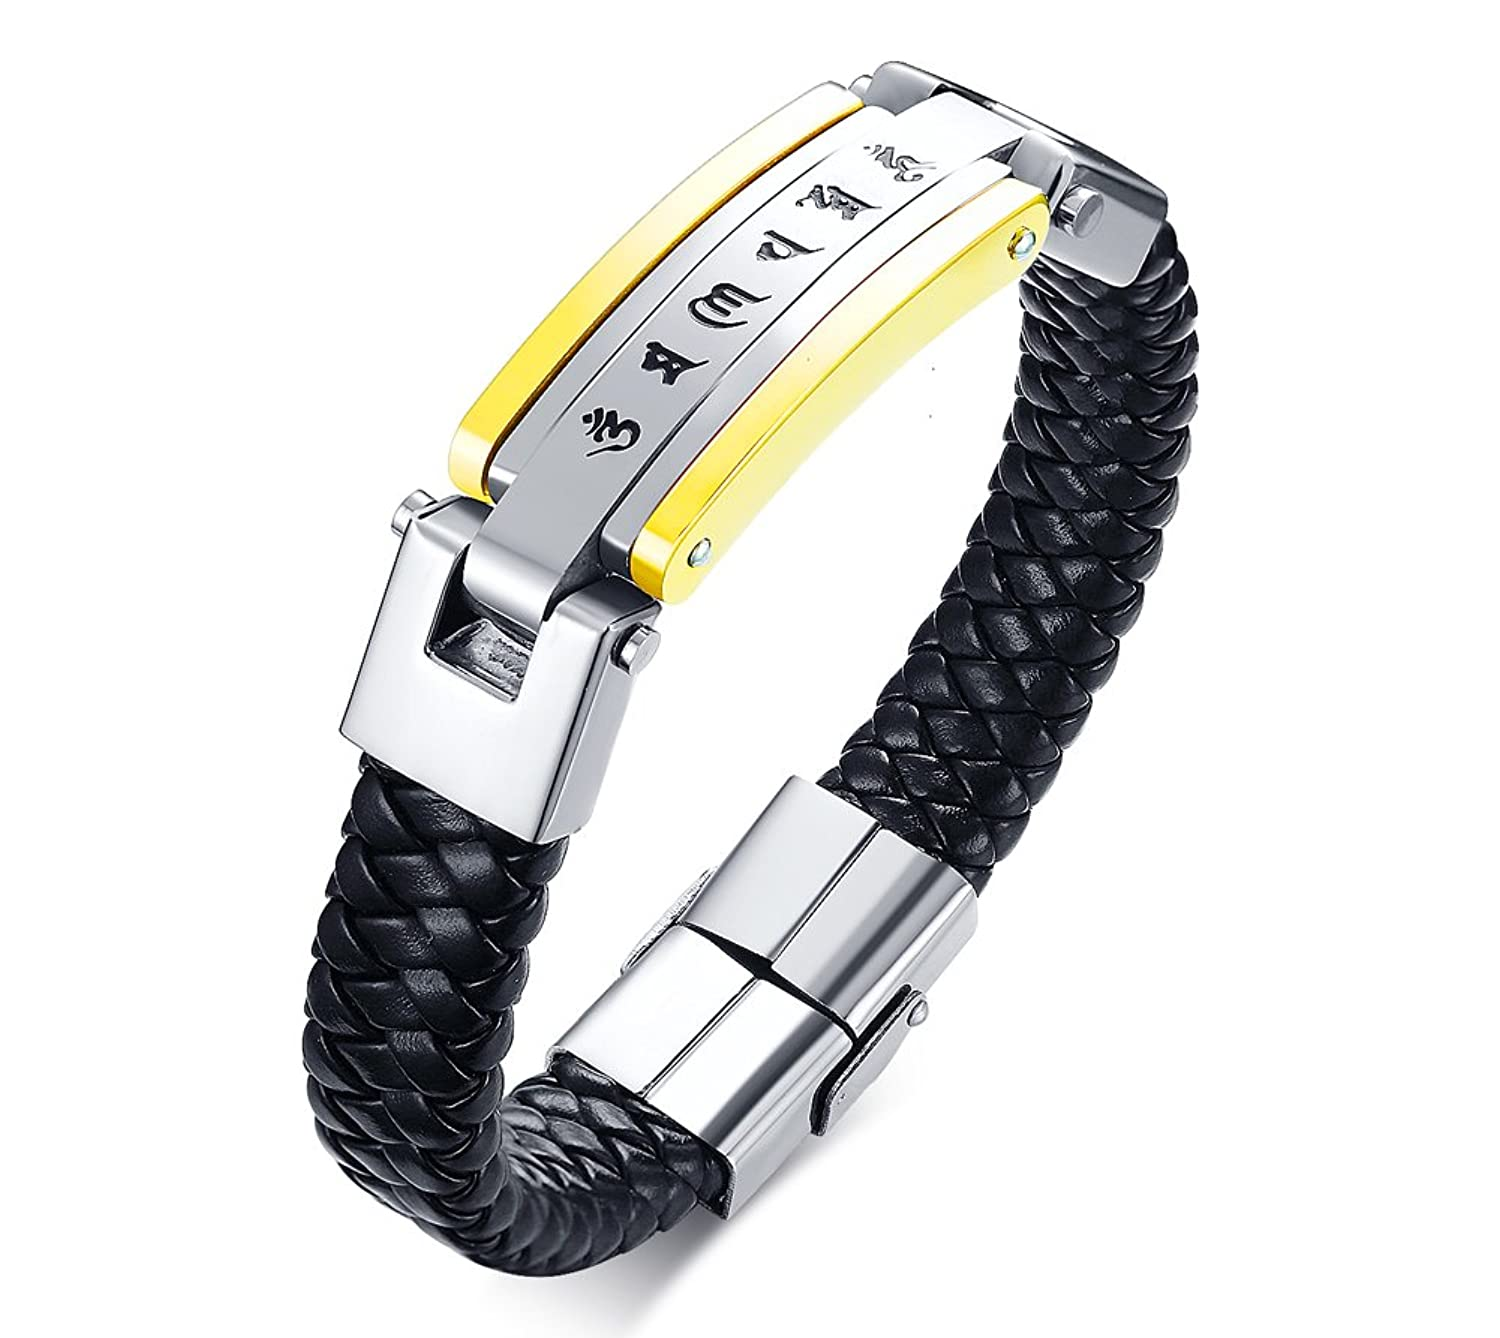 Stainless Steel Buddhist Six Word Mantra Engraved Braid Bracelet PU Leather Wristband for Men,8.8""